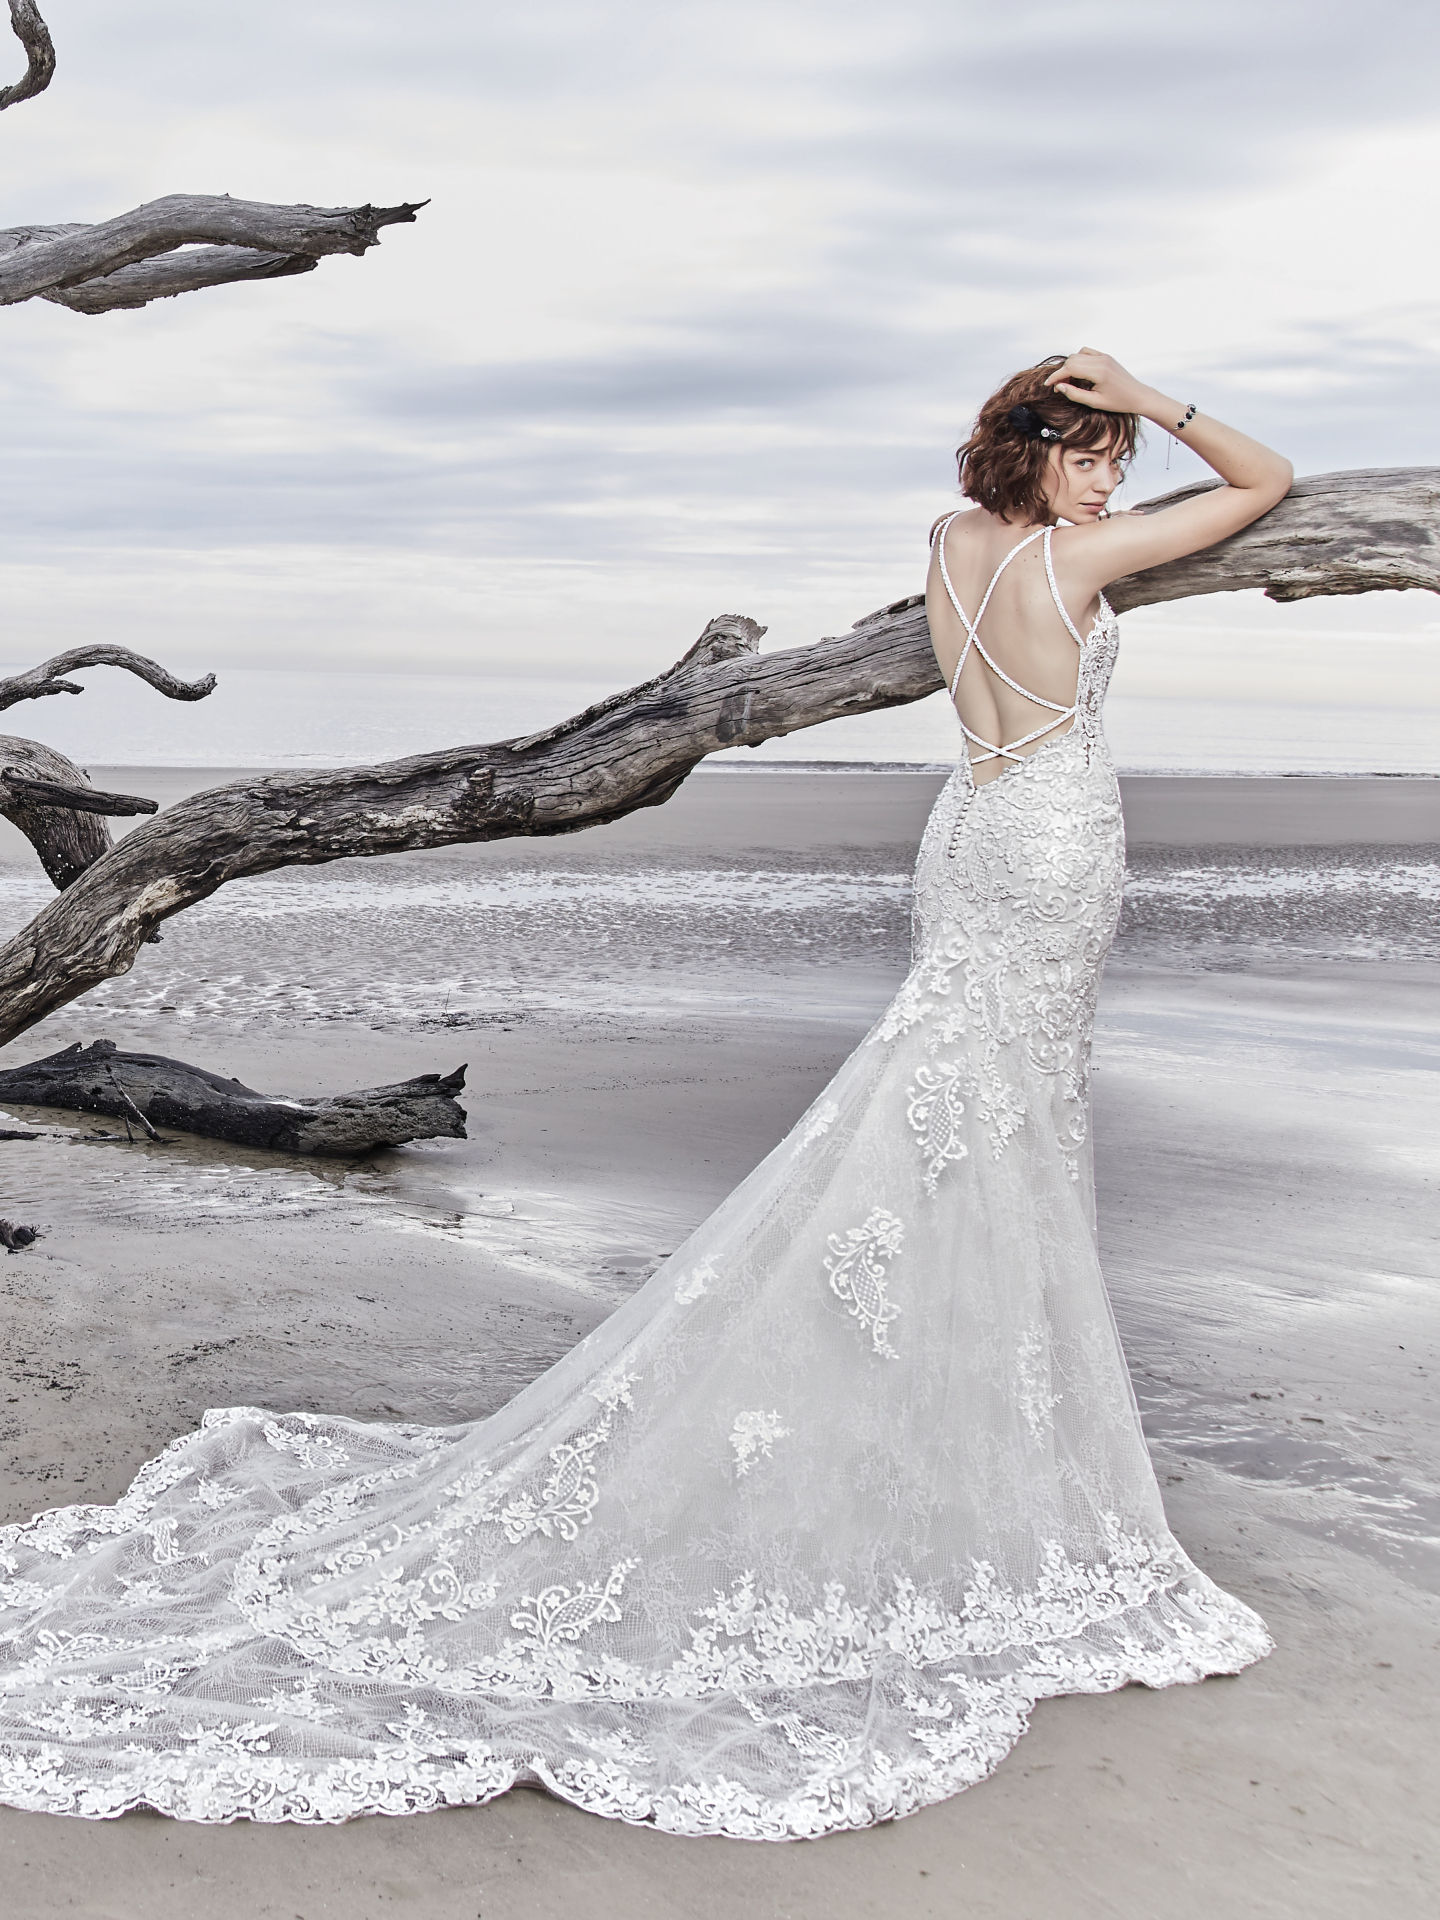 15 Gorgeous Statement-Back Gowns for the Stylish Bride - Sullivan wedding dress with statement back by Sottero & Midgley